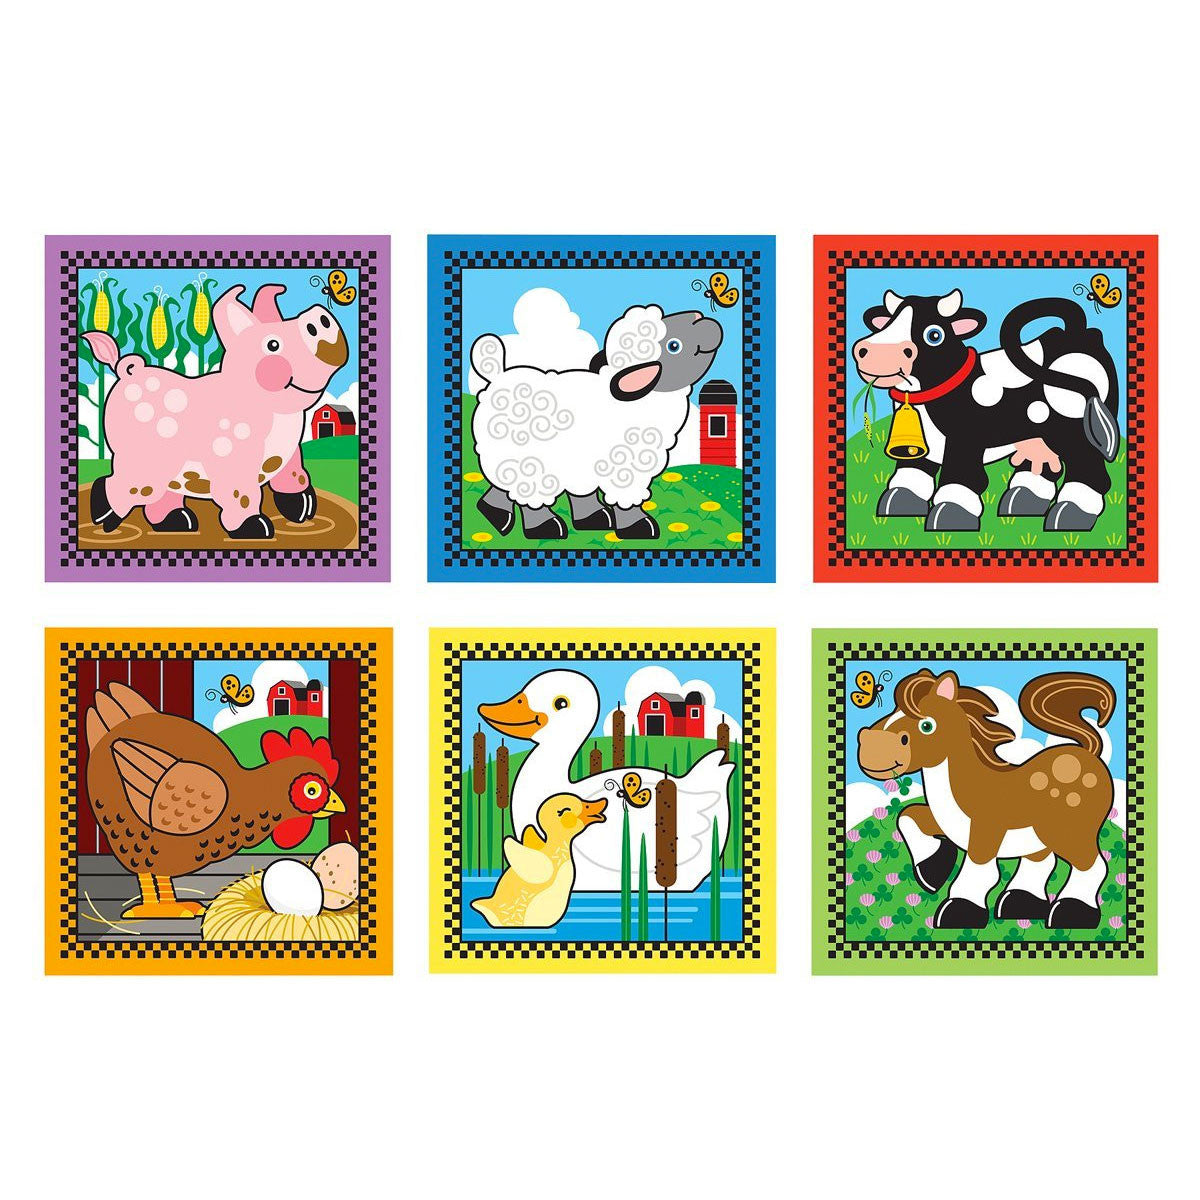 Melissa and Doug Cube Puzzle - 16 Piece Melissa and Doug Wooden Blocks at Little Earth Nest Eco Shop